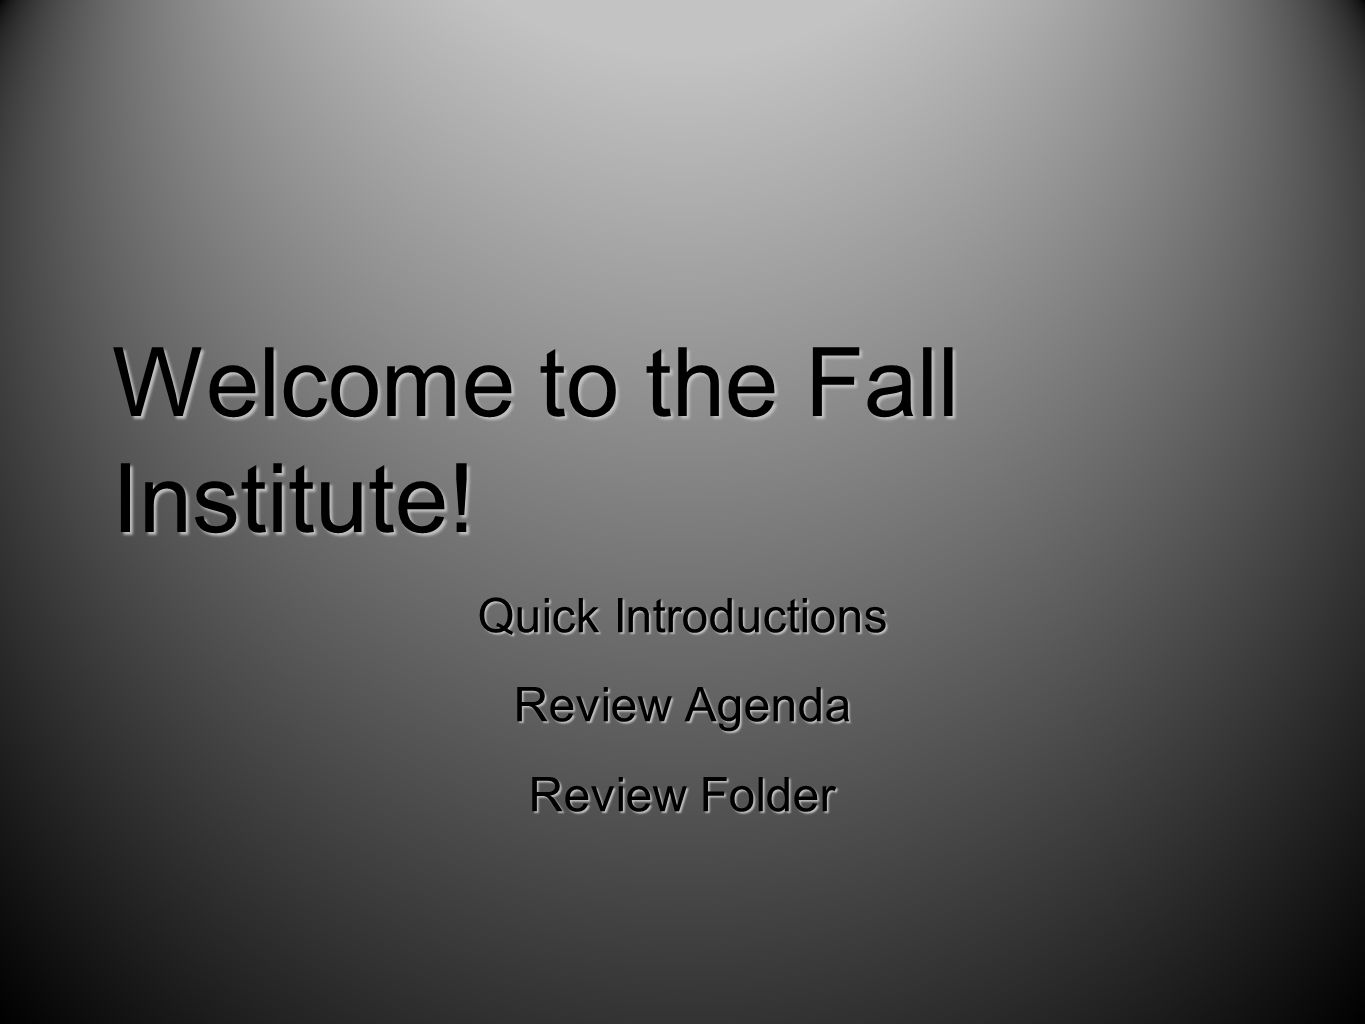 Welcome to the Fall Institute! Quick Introductions Review Agenda Review Folder